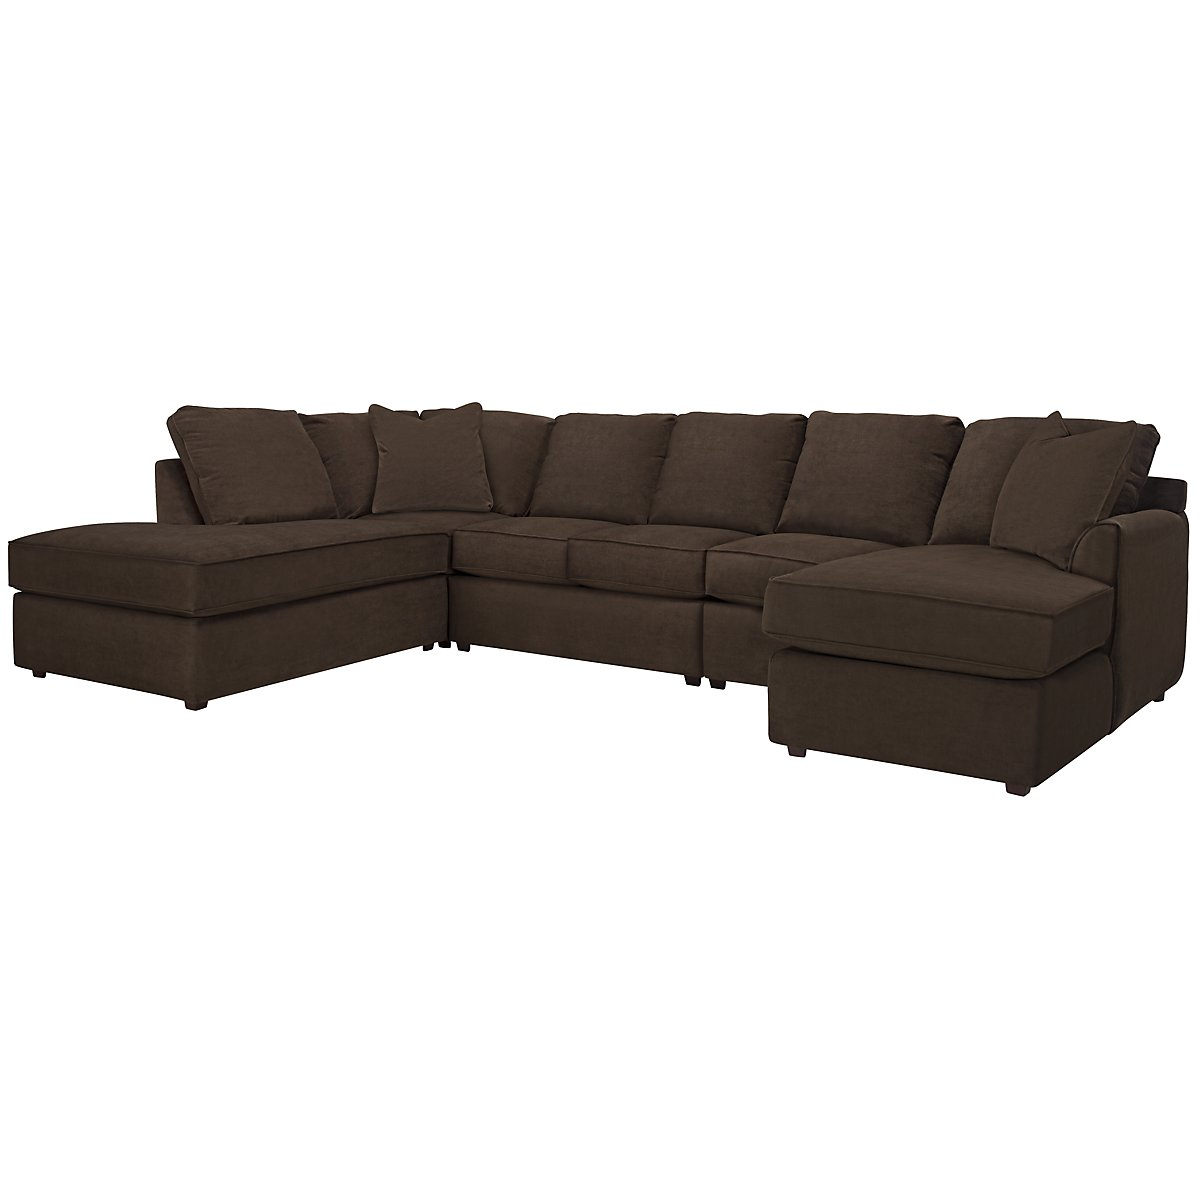 Express3 Dk Brown Microfiber Large Left Bumper Sectional